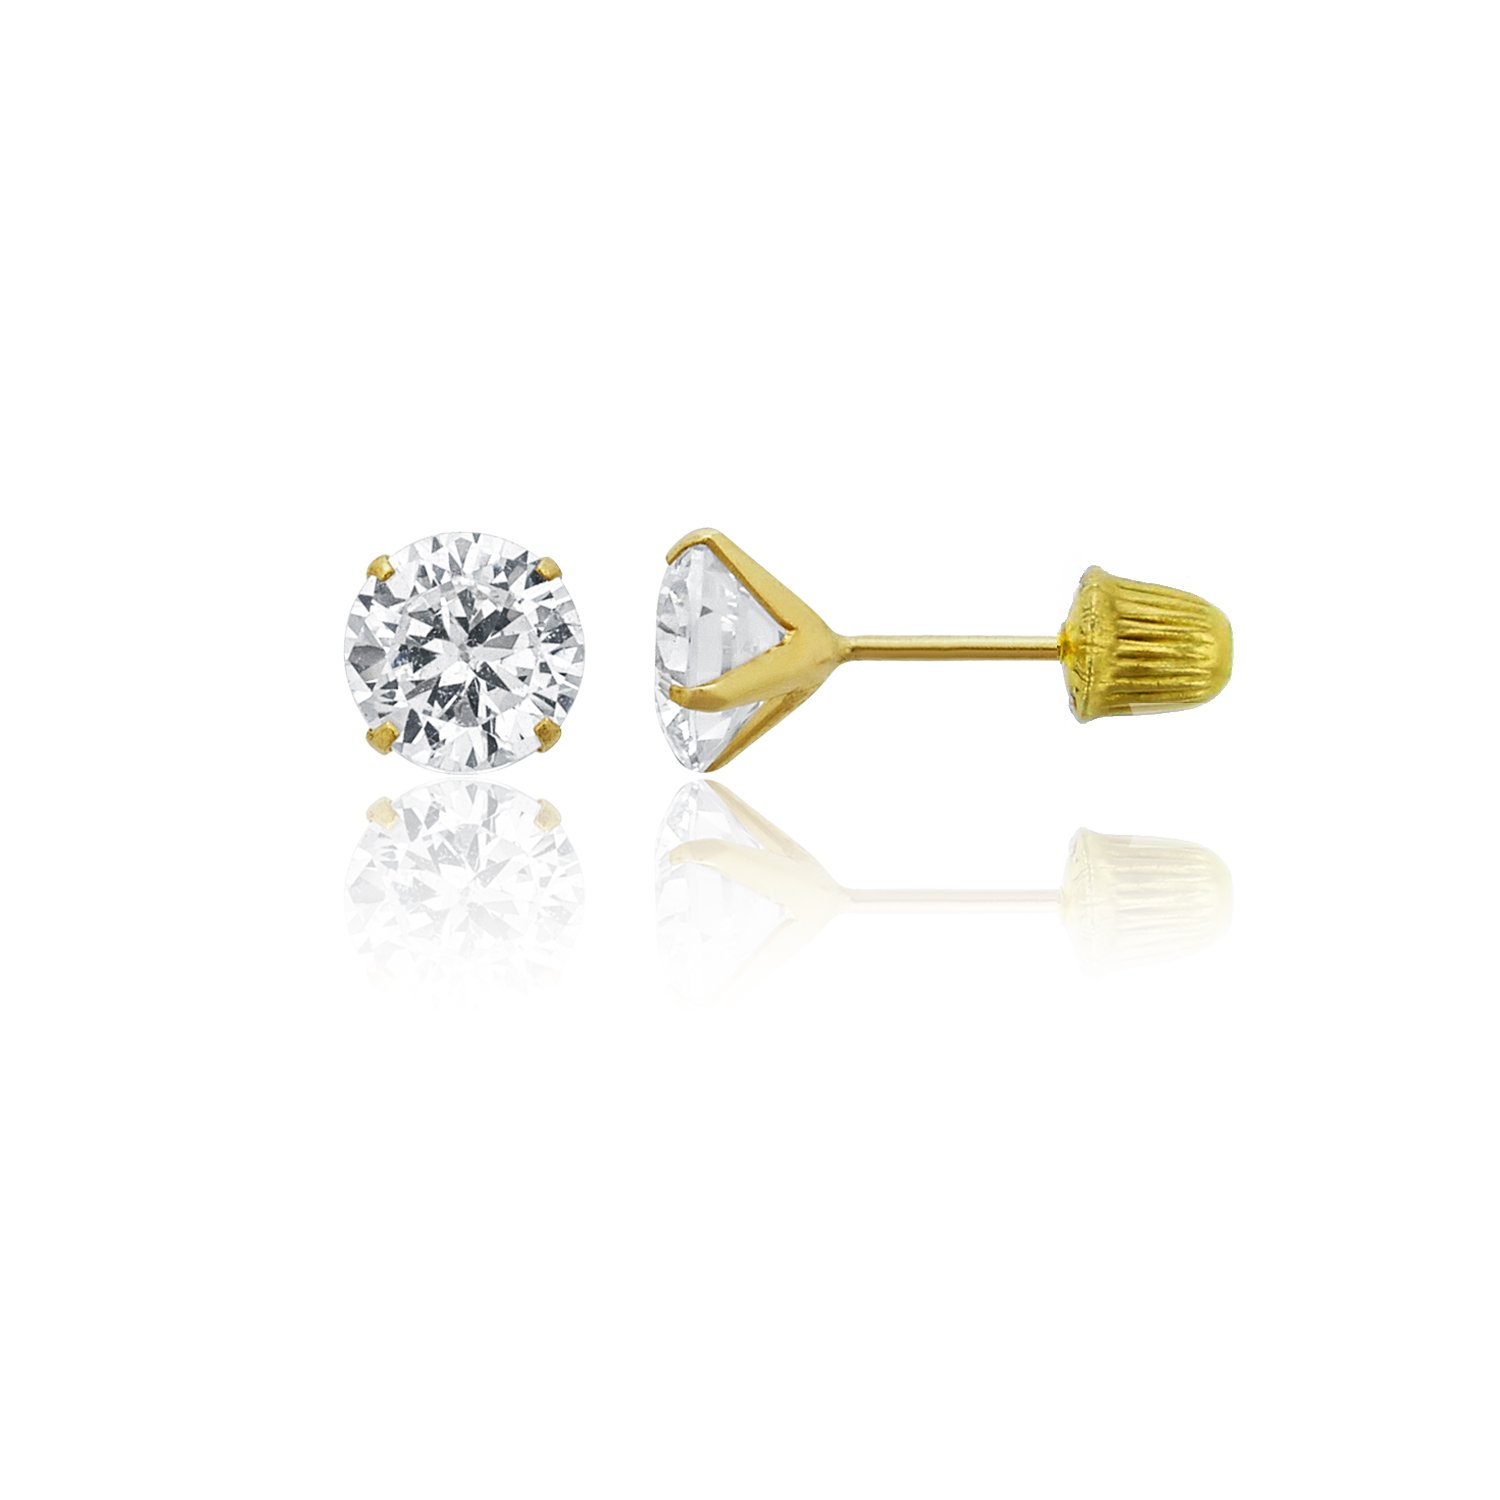 14k Yellow Gold mm Round Solitaire Ball Screw Back Stud Earrings YGI GROUP FZE4638Y2W